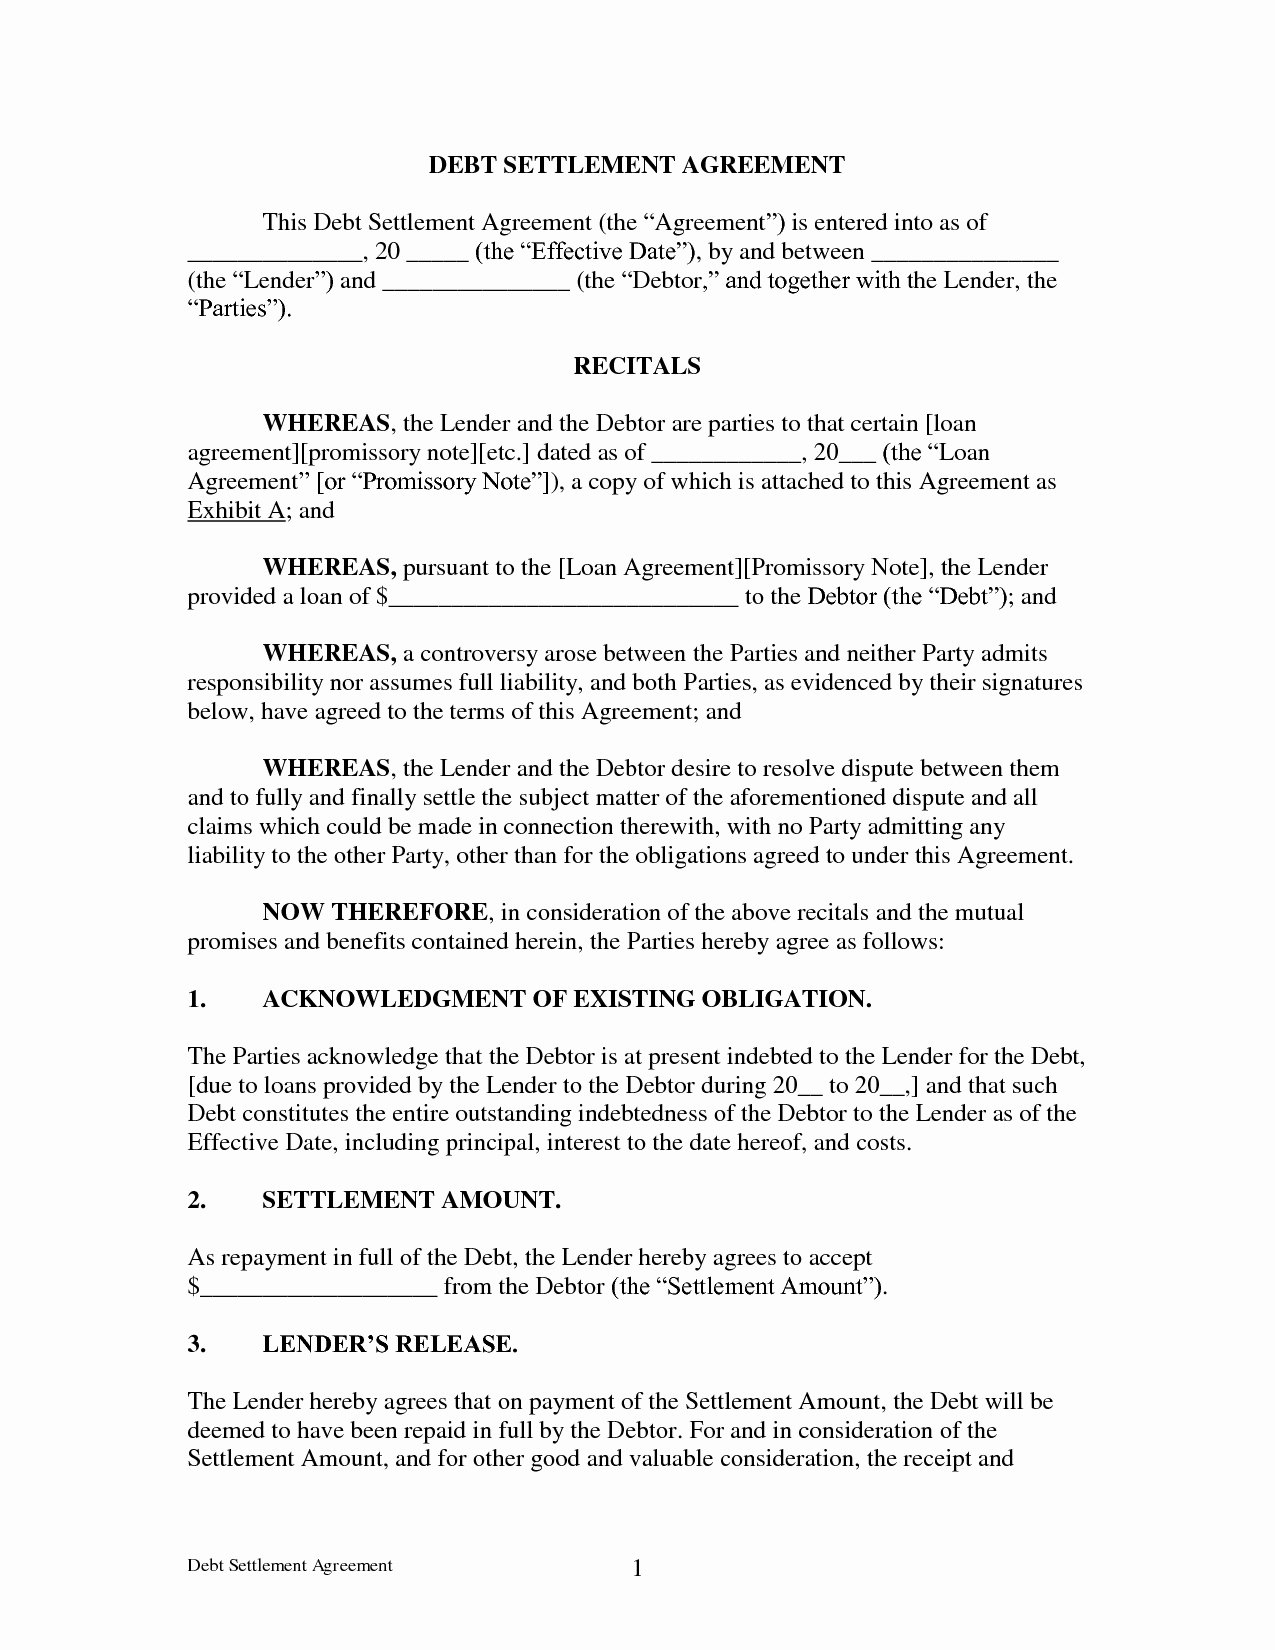 Simple Settlement Agreement Template Beautiful Agreement Debt Settlement Agreement form